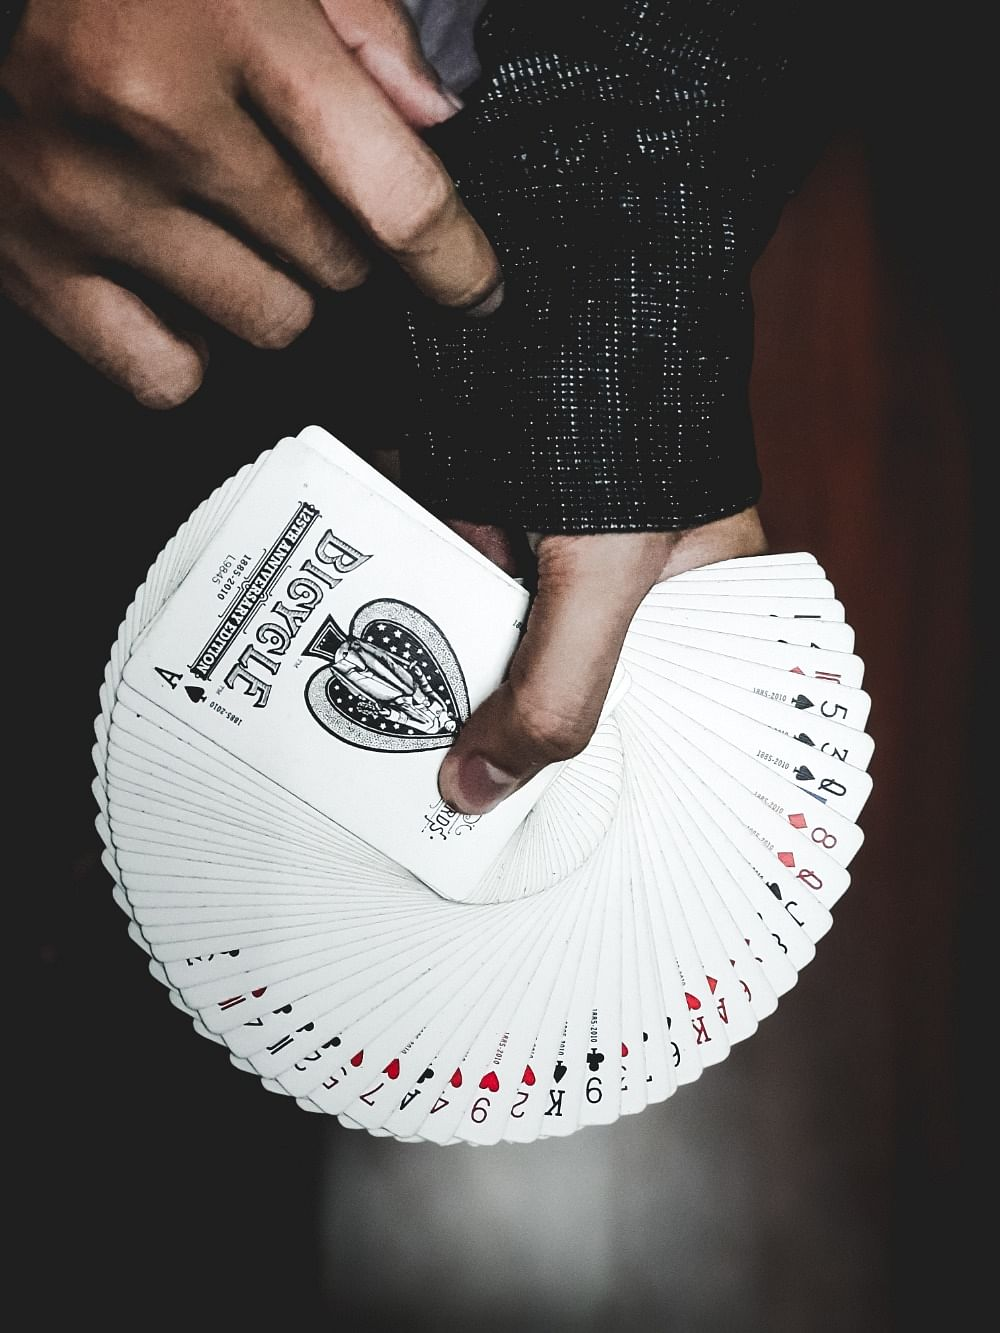 A magician fans a deck of cards in his hands